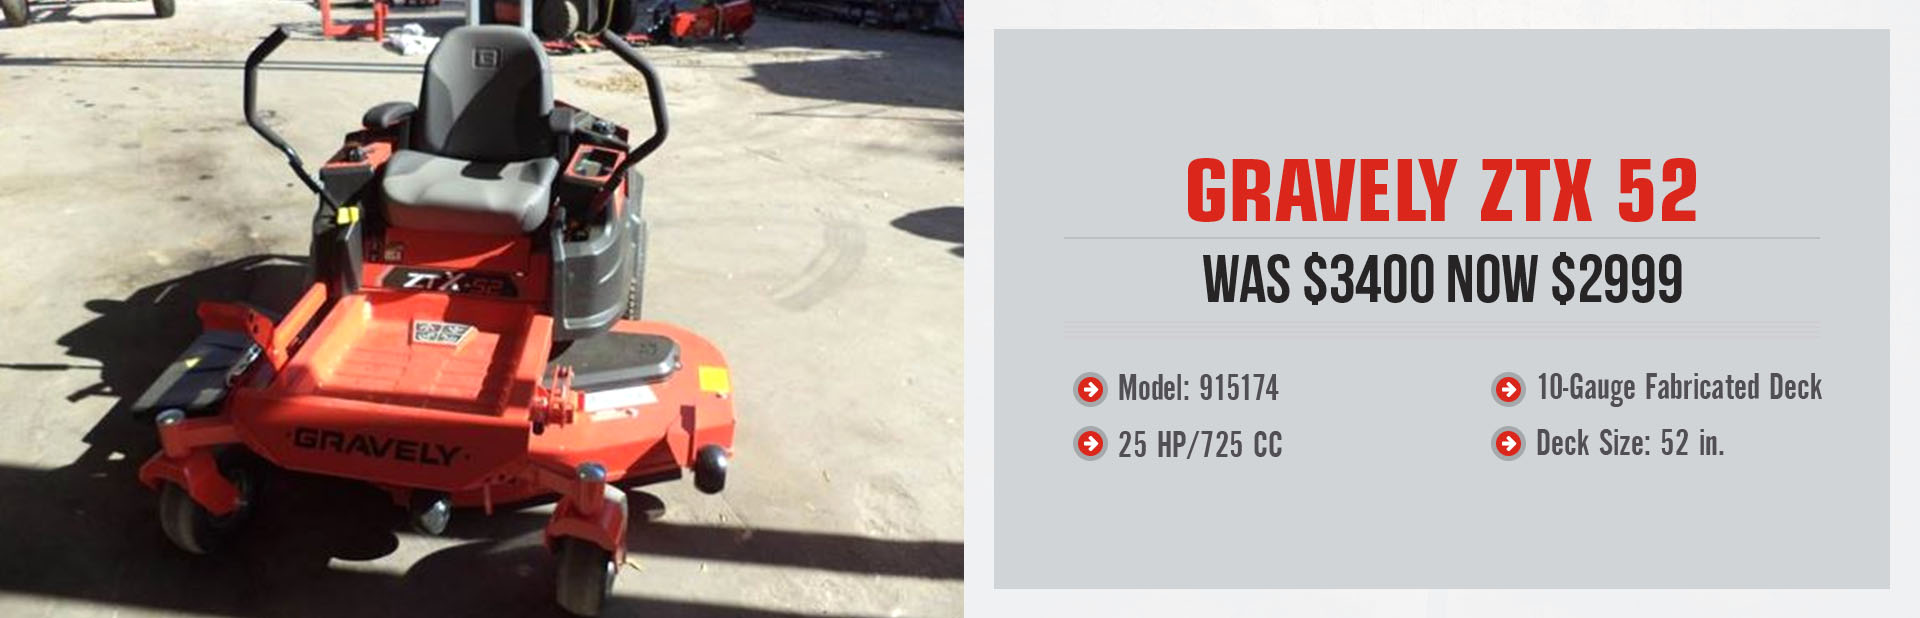 Gravely ZTX 52 is on sale for $2,999! Contact us for details.